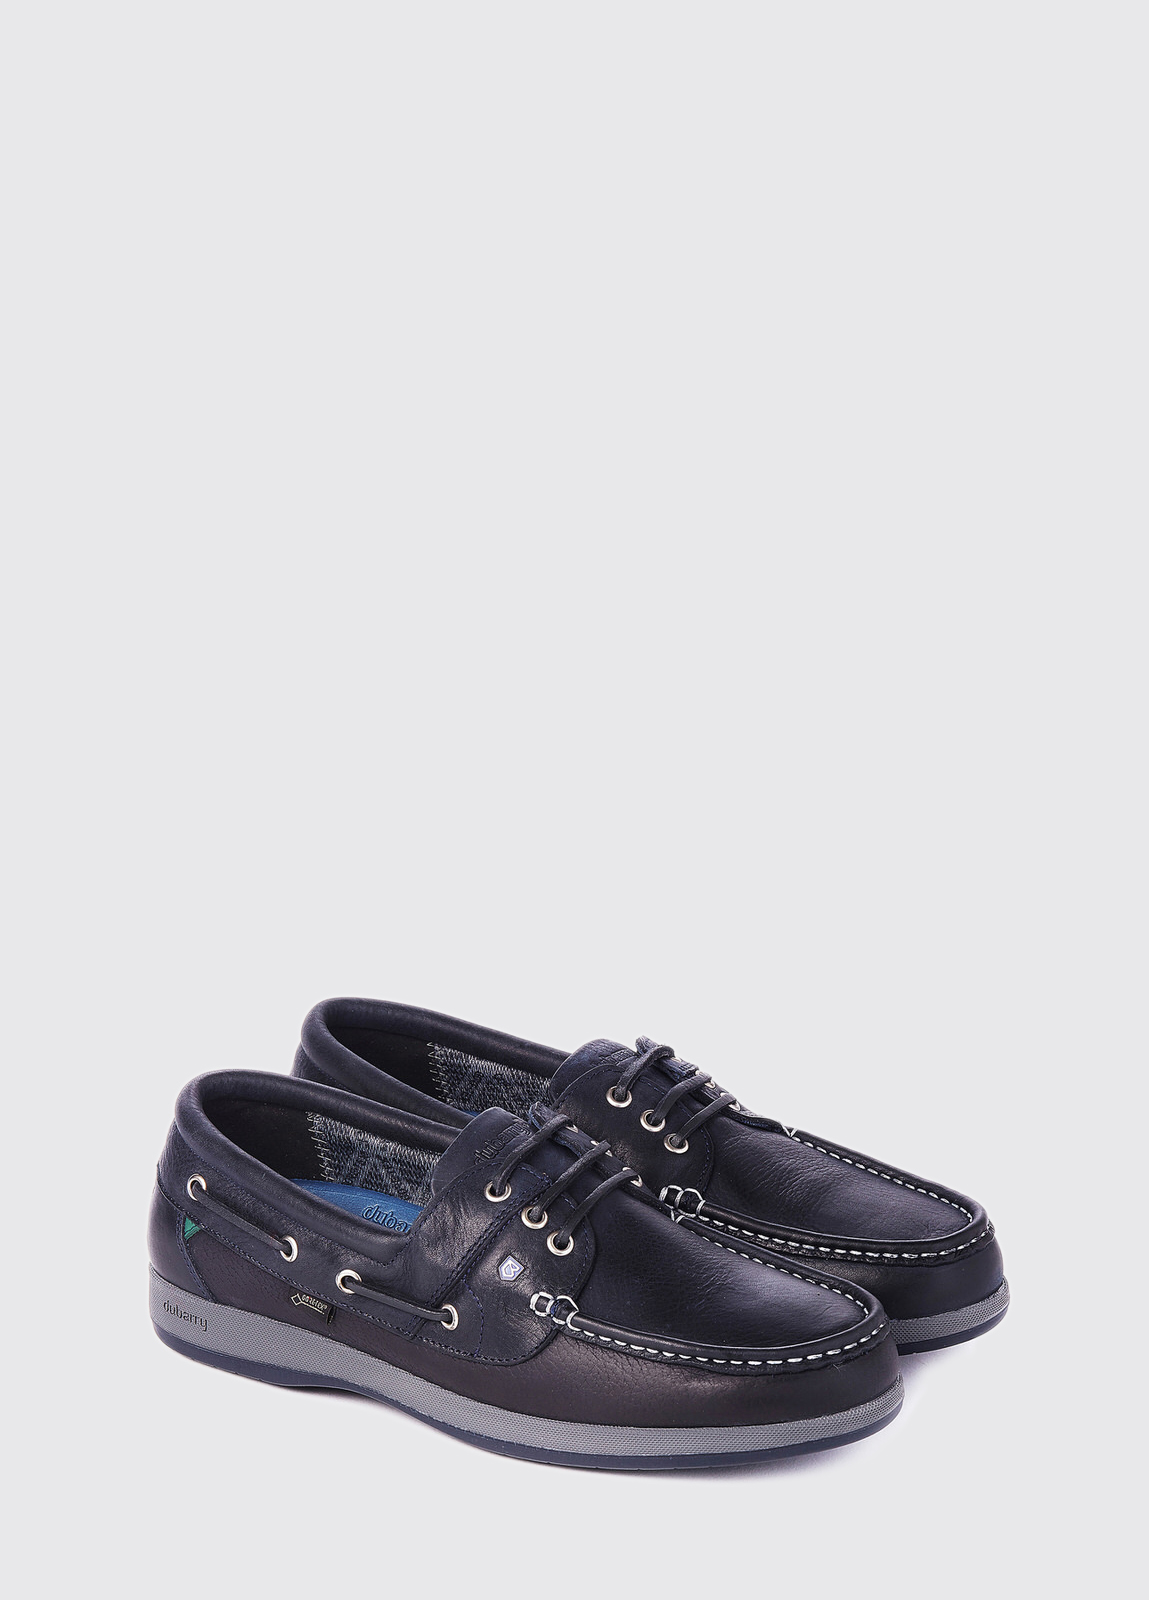 Mariner Moccasin - Navy